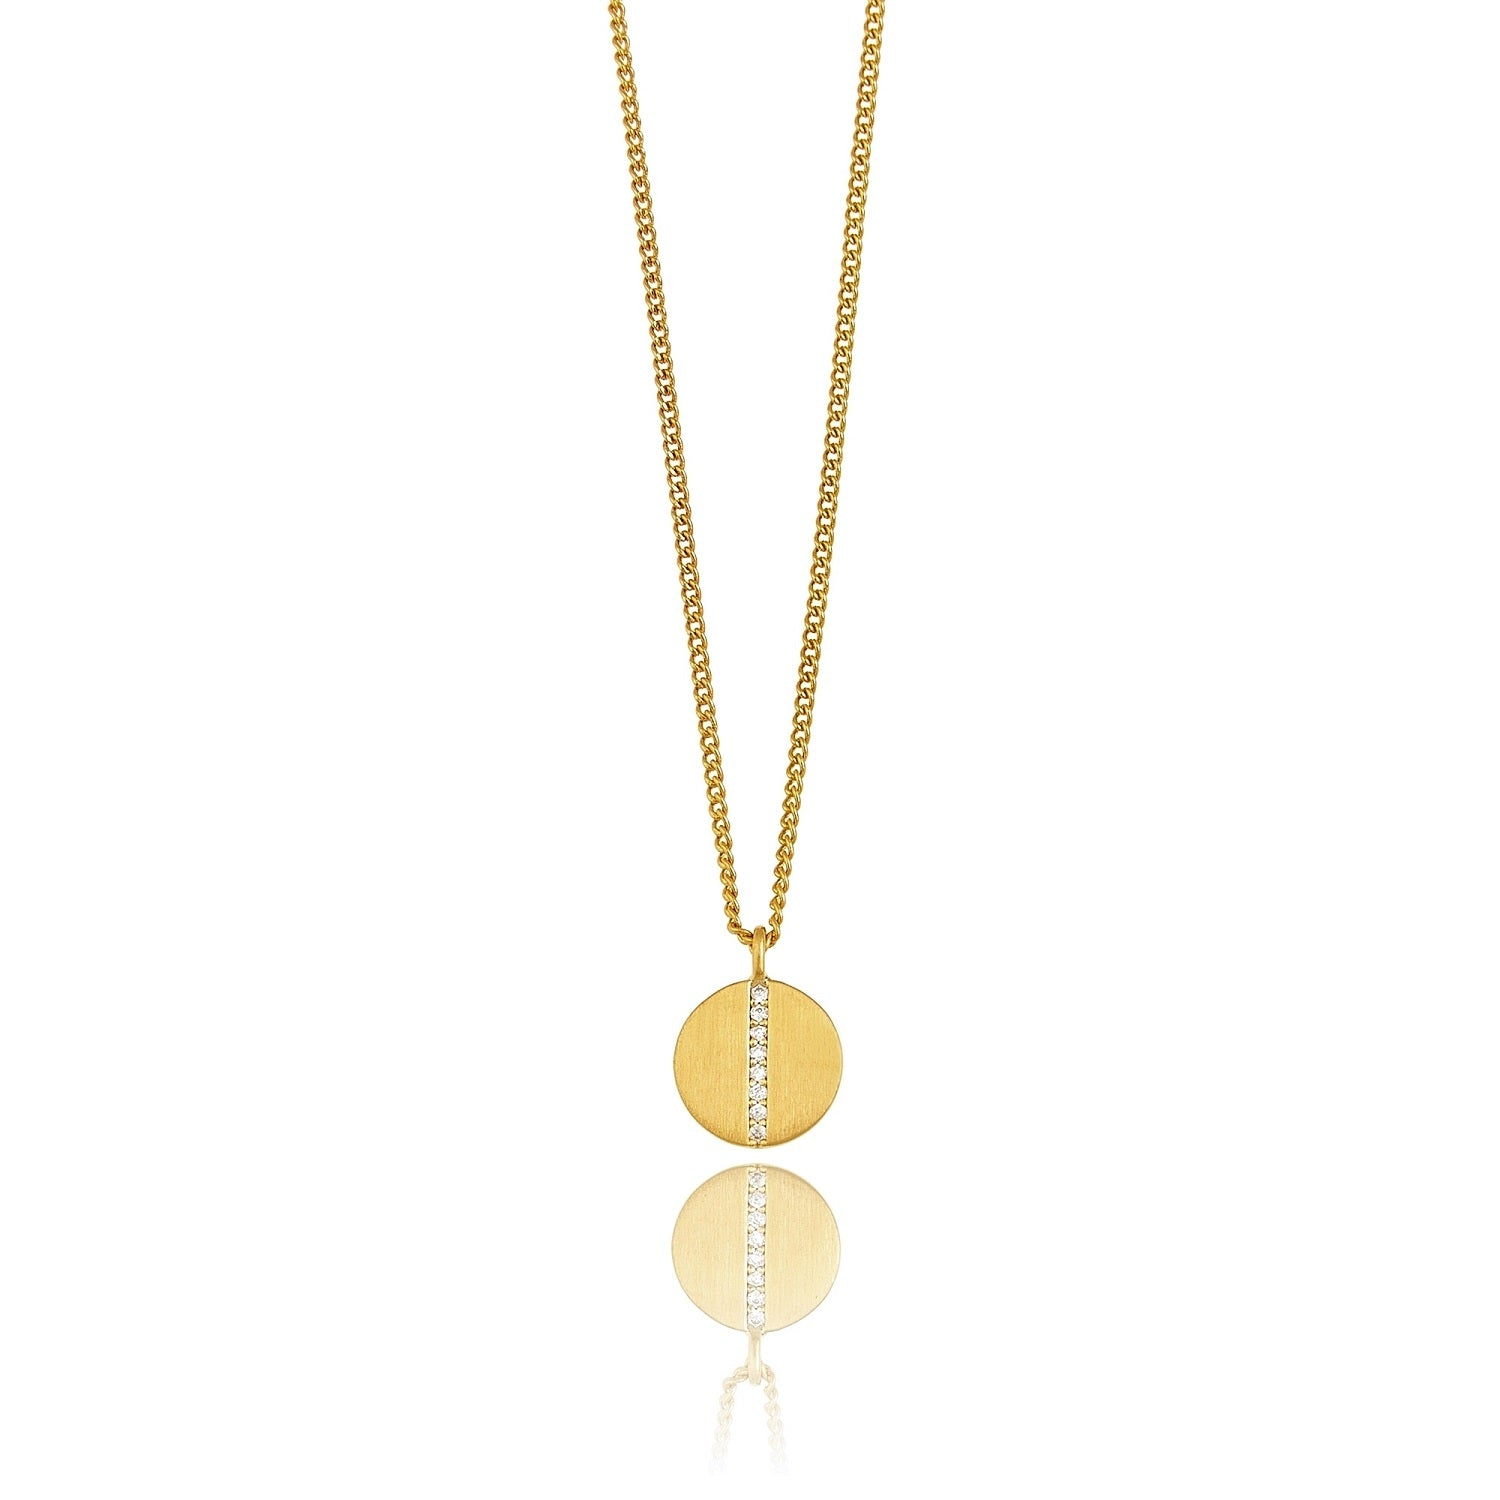 LADY GOLD - Necklace